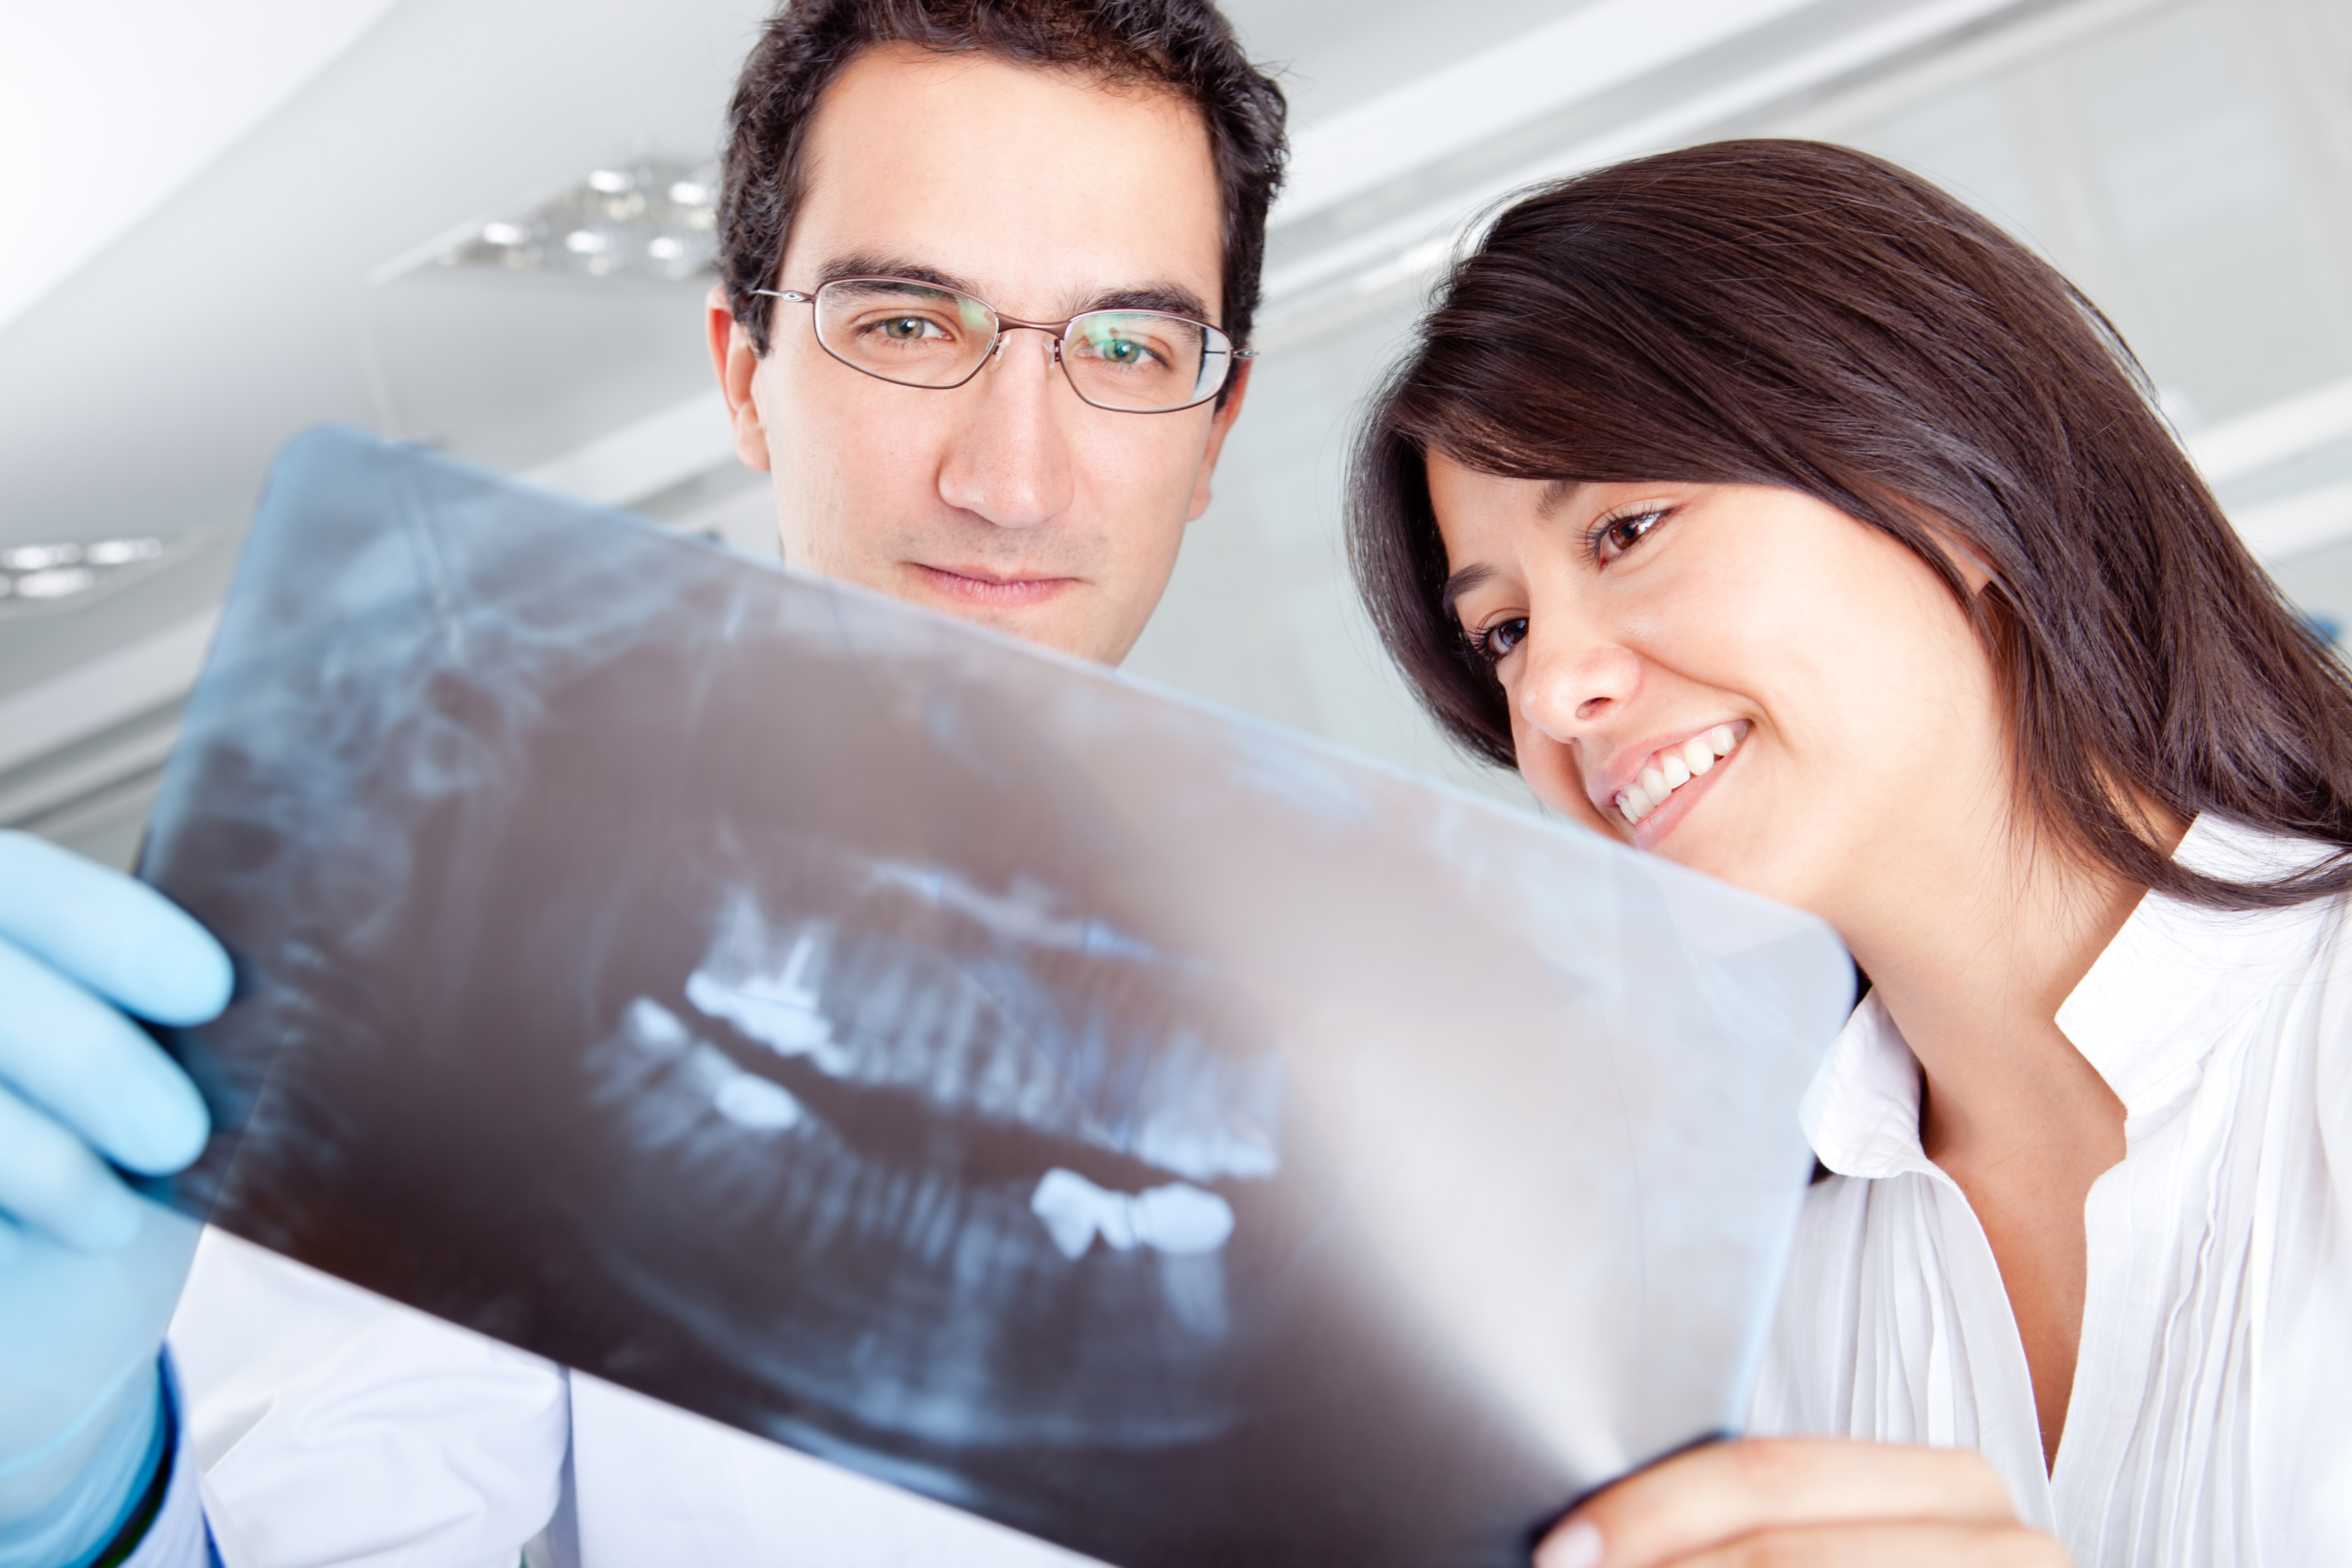 Oman health: Myths and facts of root canal treatments